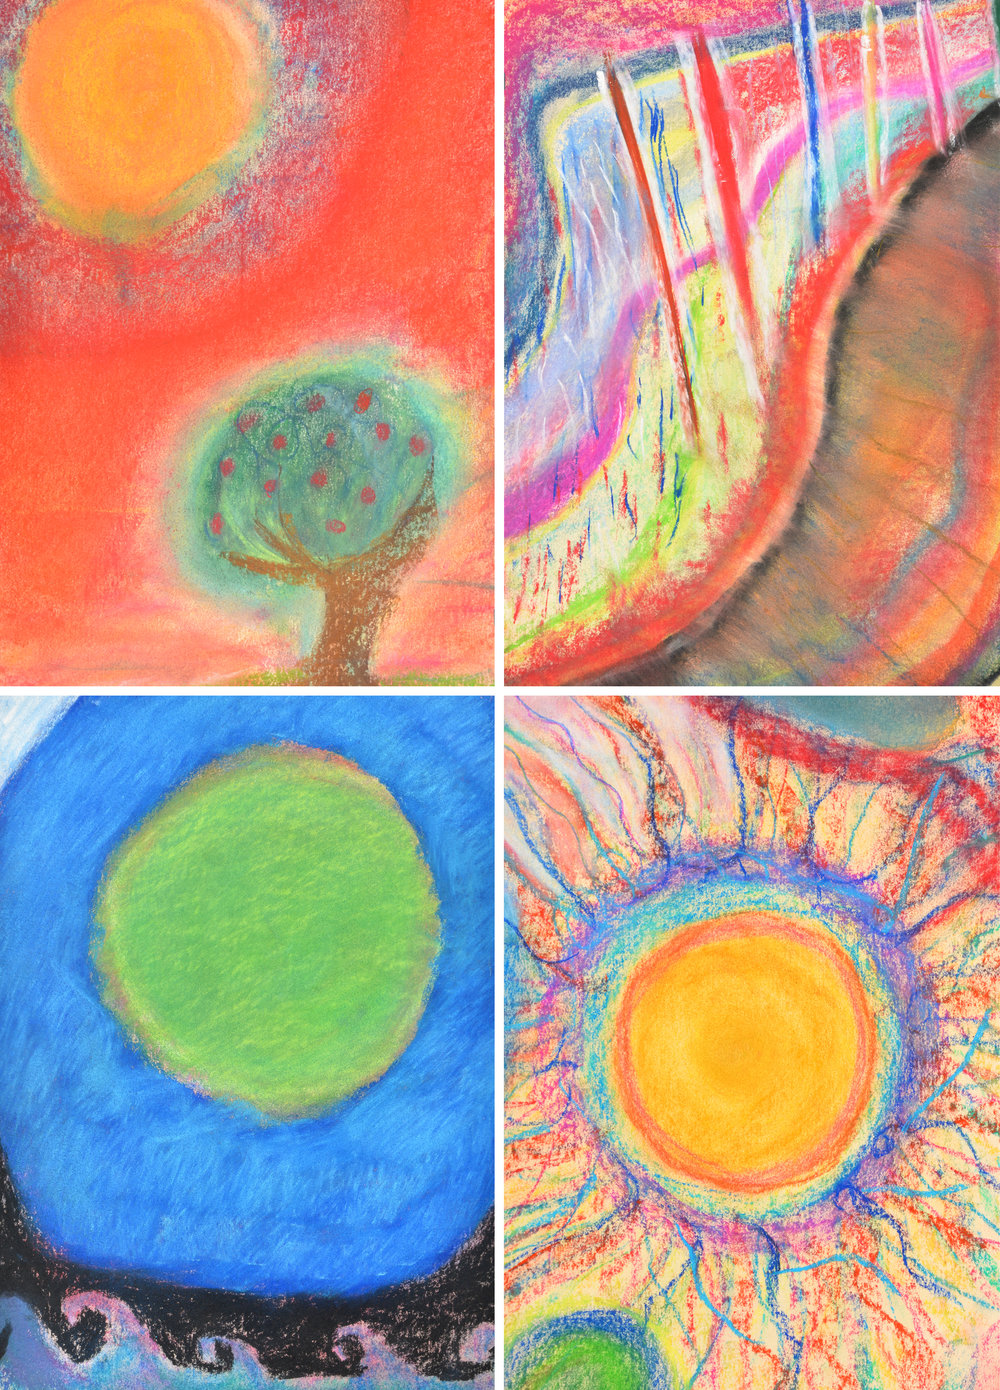 These 4 pastel drawings from 2017 show the range of styles represented in the finished diploma folios.